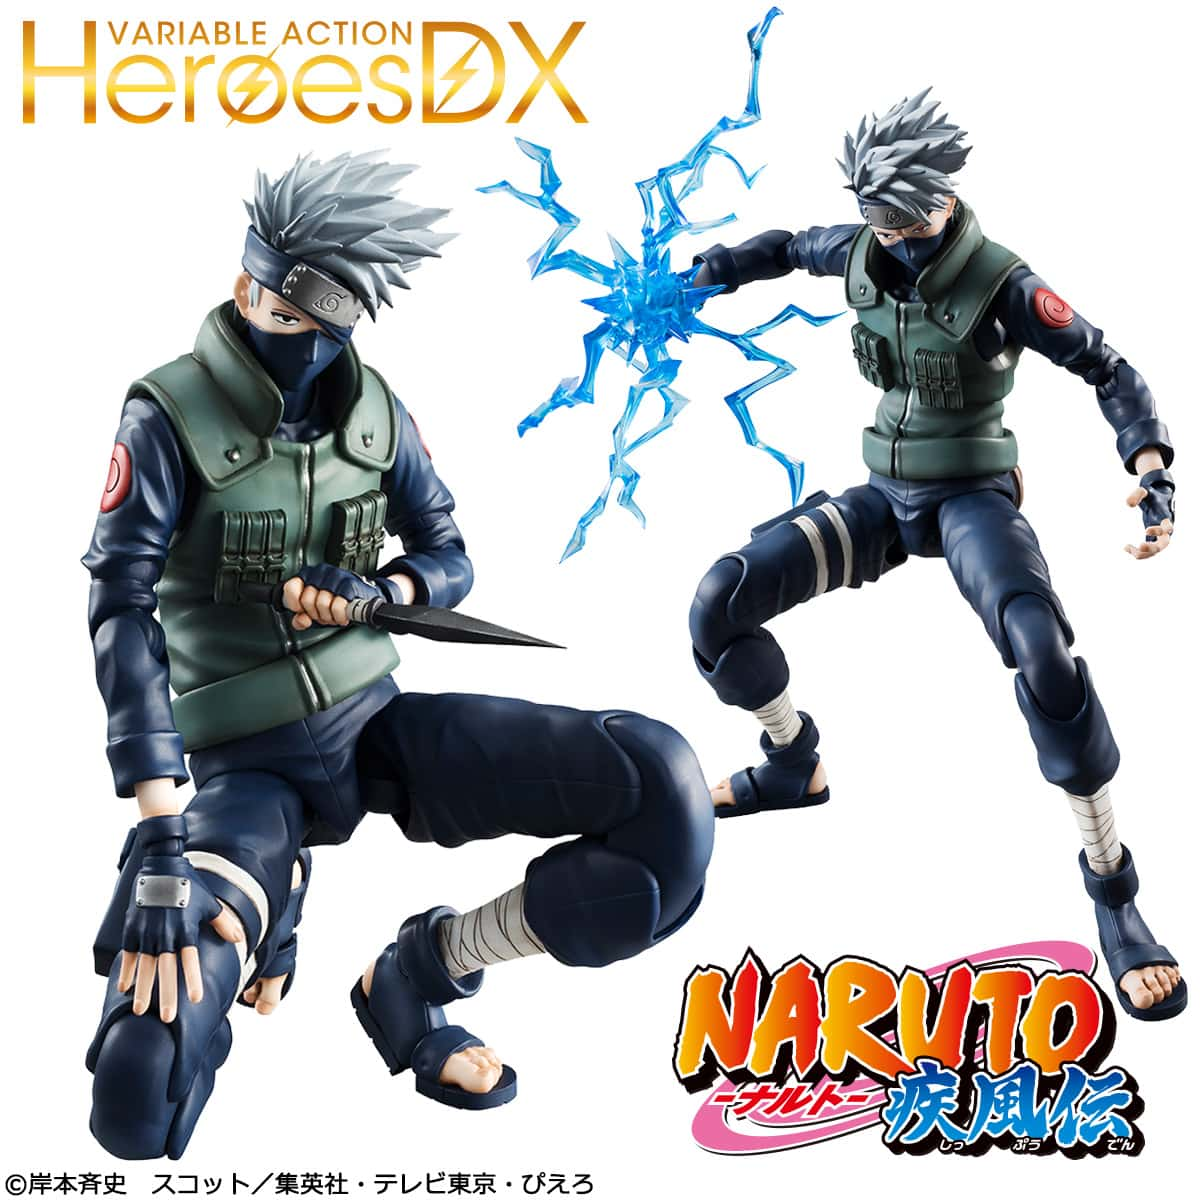 HATAKE KAKASHI FIGURA NARUTO VARIABLE ACTION HEROES DX